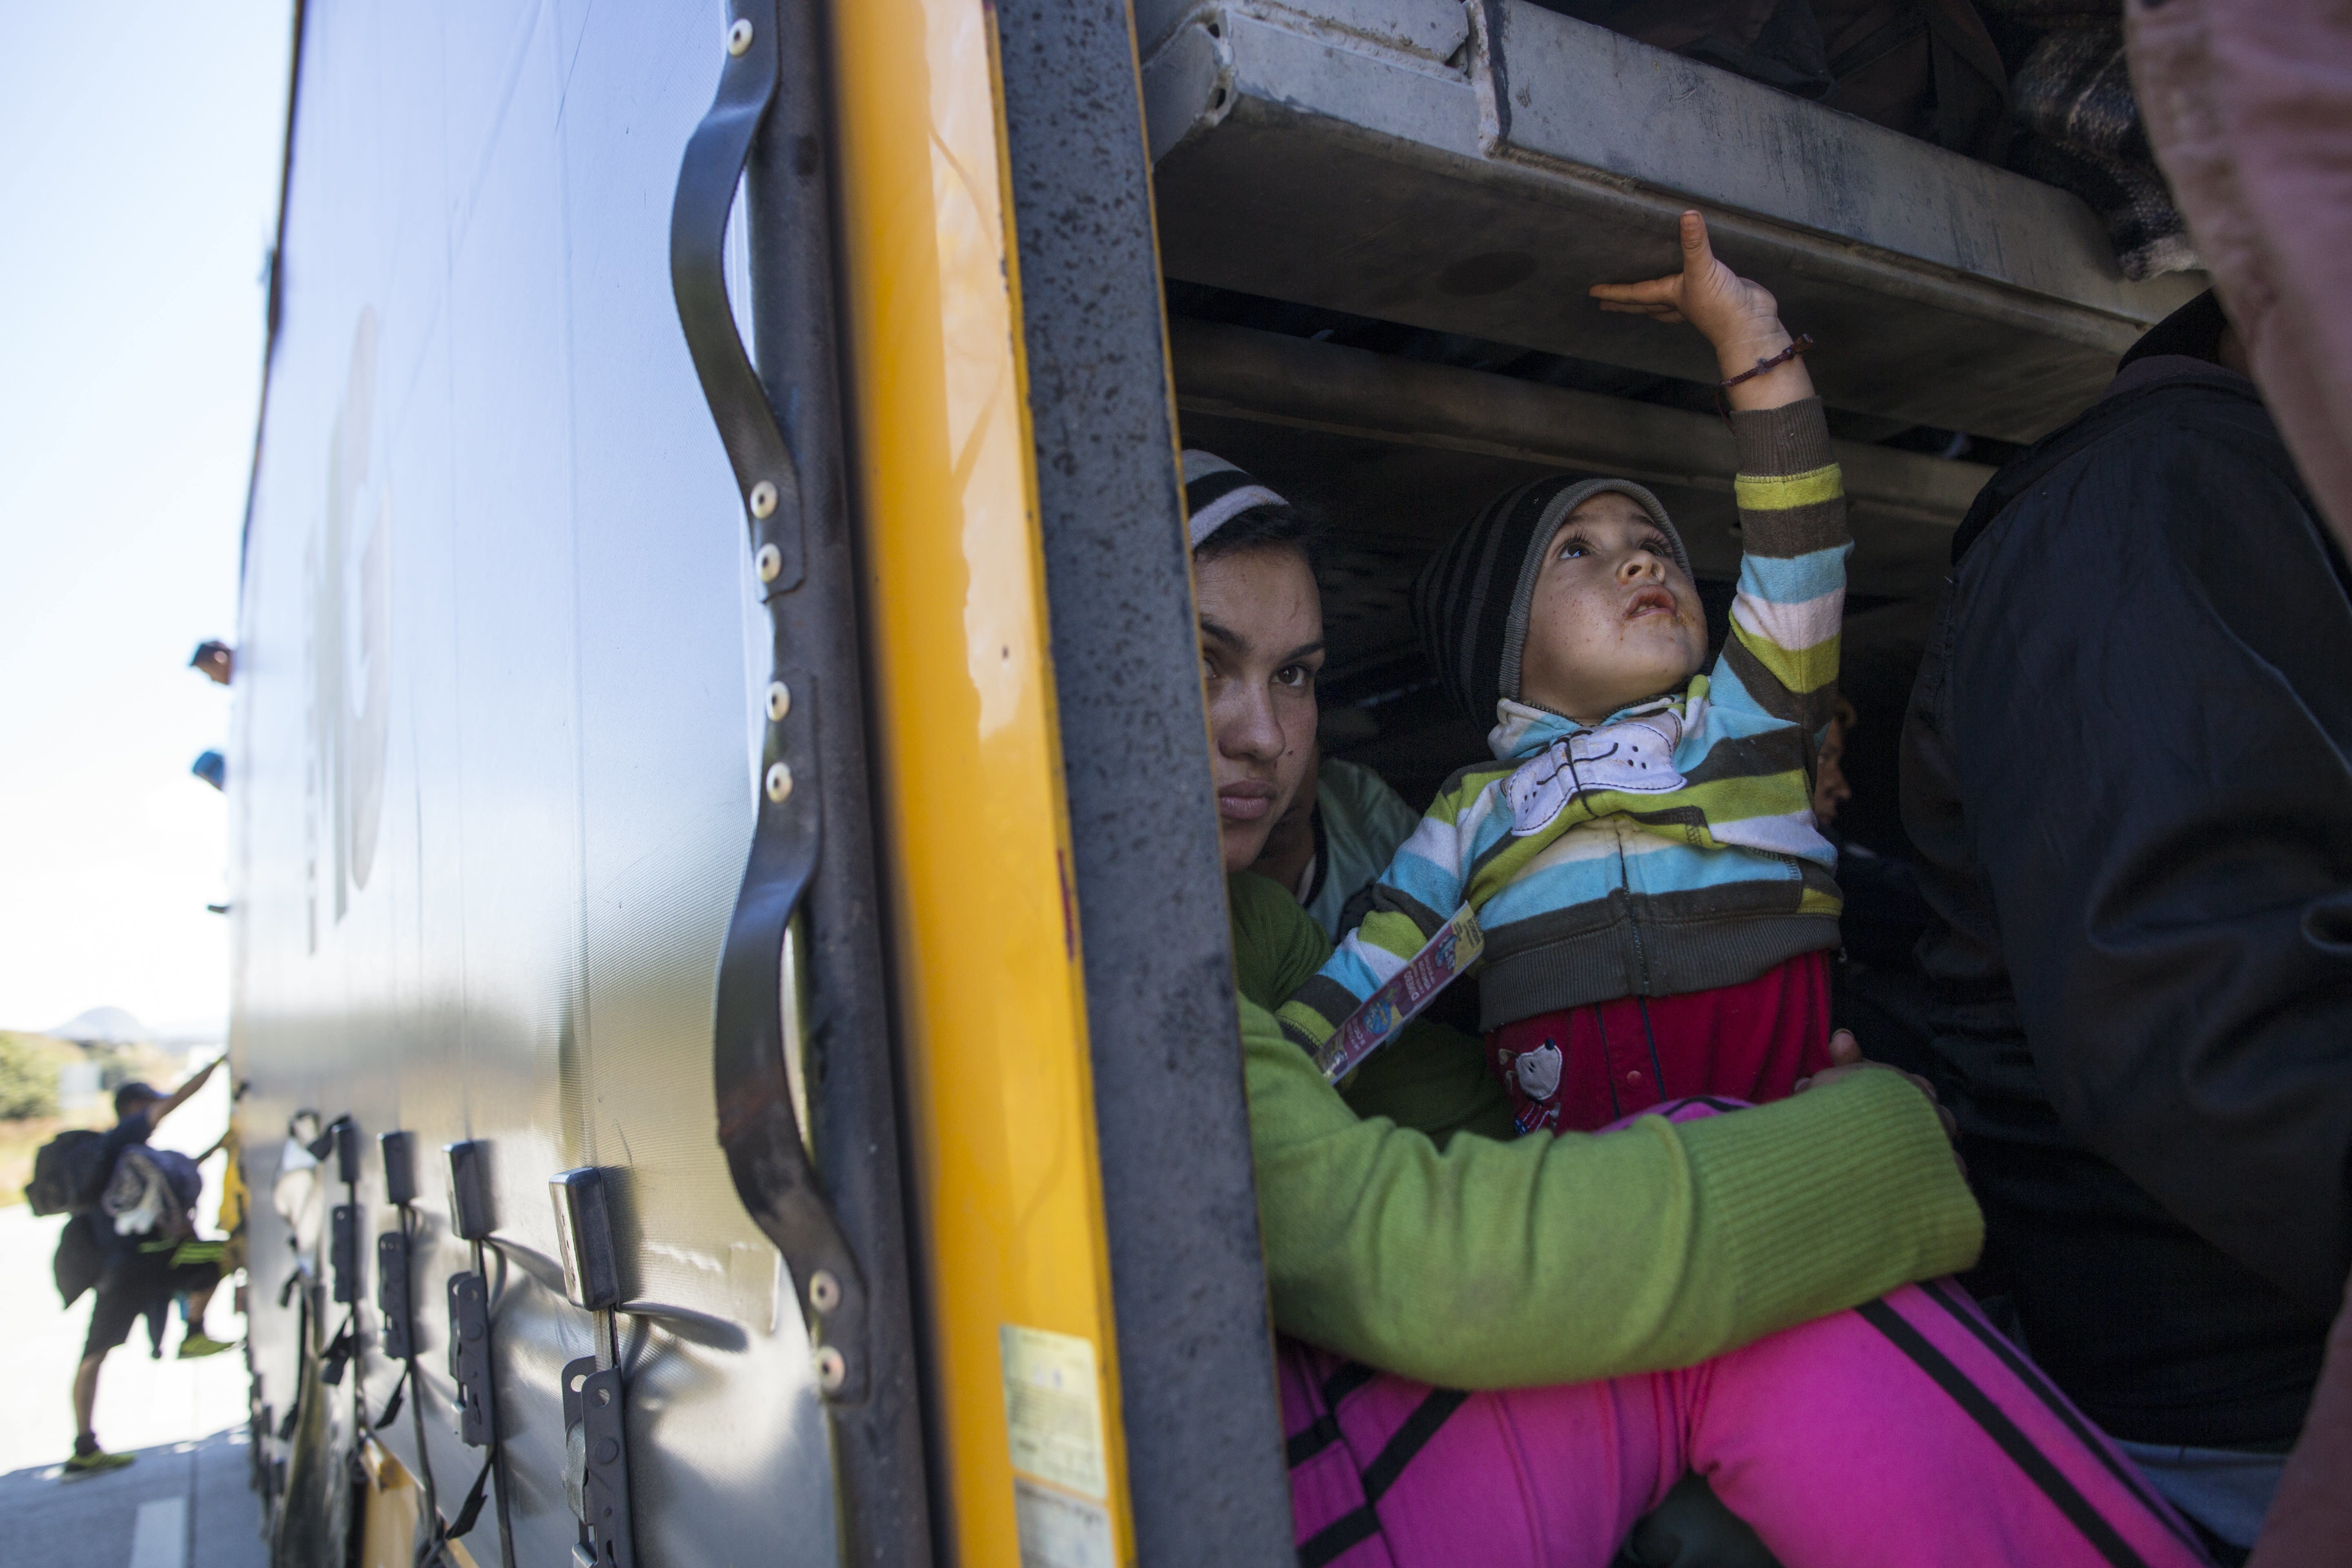 Honduran migrants Marta Esperanza and Reyes River travel in a truck with Marta's son Oscar Alejandro along the highway that connects Guadalajara with Tepic, Mexico, Tuesday, Nov. 13, 2018, as they travel with a migrant caravan. Many migrants say they are fleeing rampant poverty, gang violence and political instability primarily in the Central American countries of Honduras, Guatemala, El Salvador and Nicaragua. (AP Photo/Rodrigo Abd)